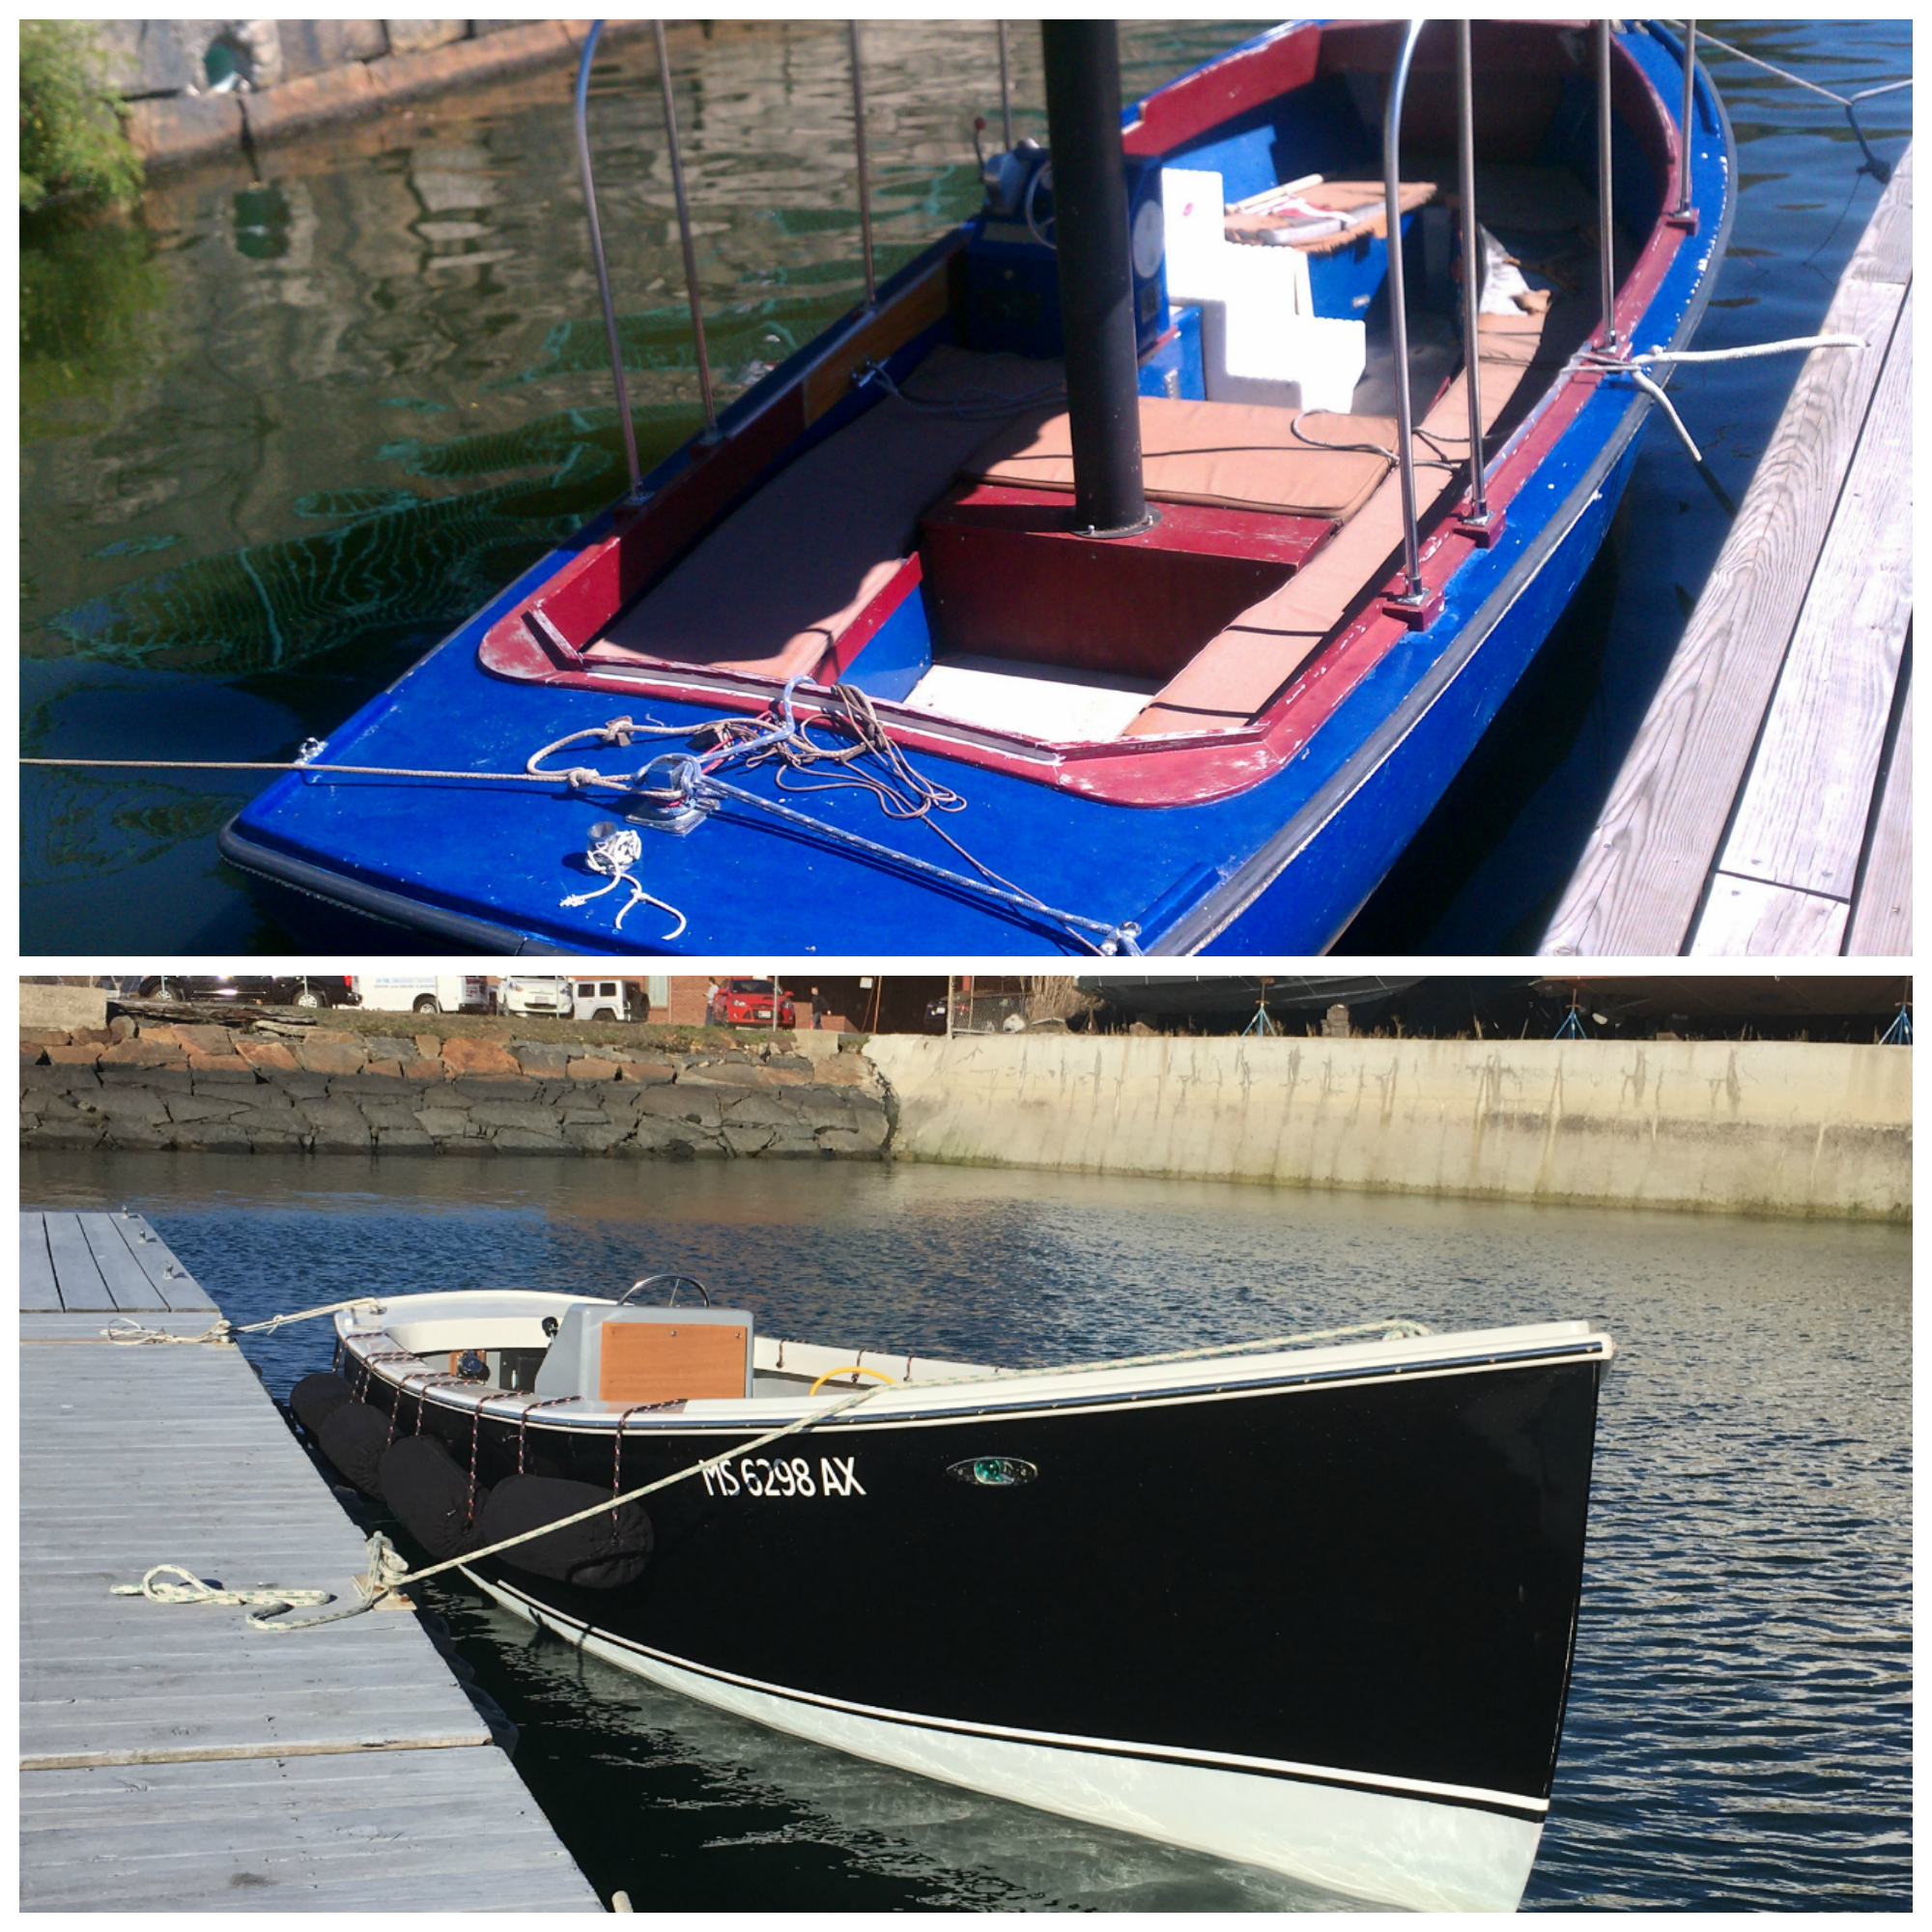 Restoration of a 20 foot Duffy launch